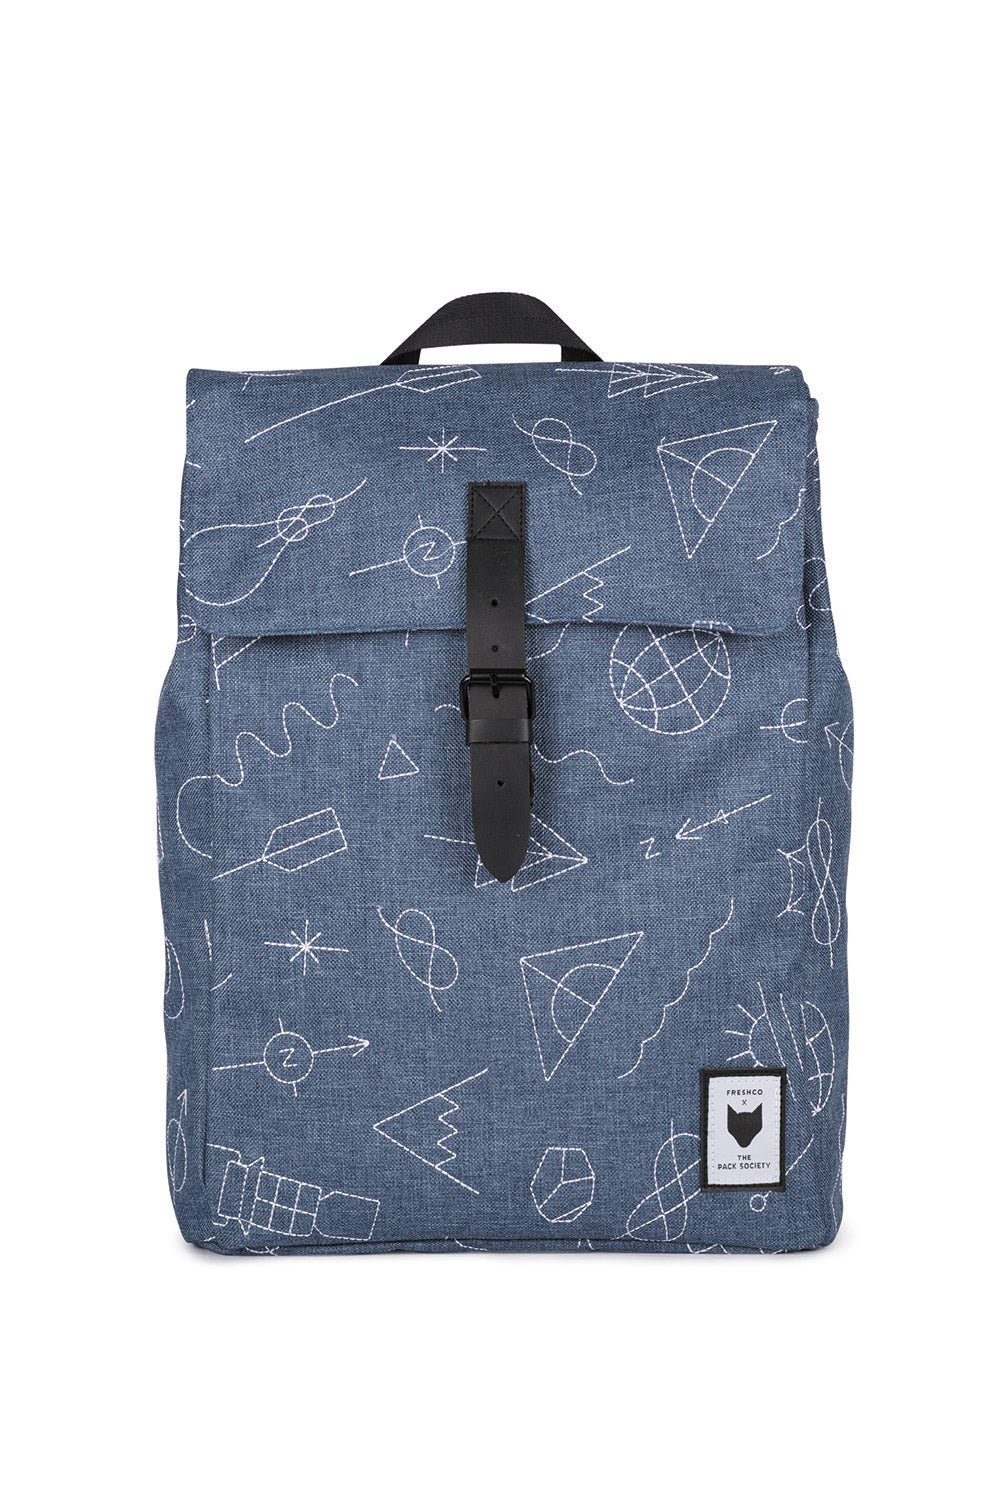 THE PACK SOCIETY - SQUARE EMBROIDERY BACKPACK - Ozon Boutique b2f0b5bab0726